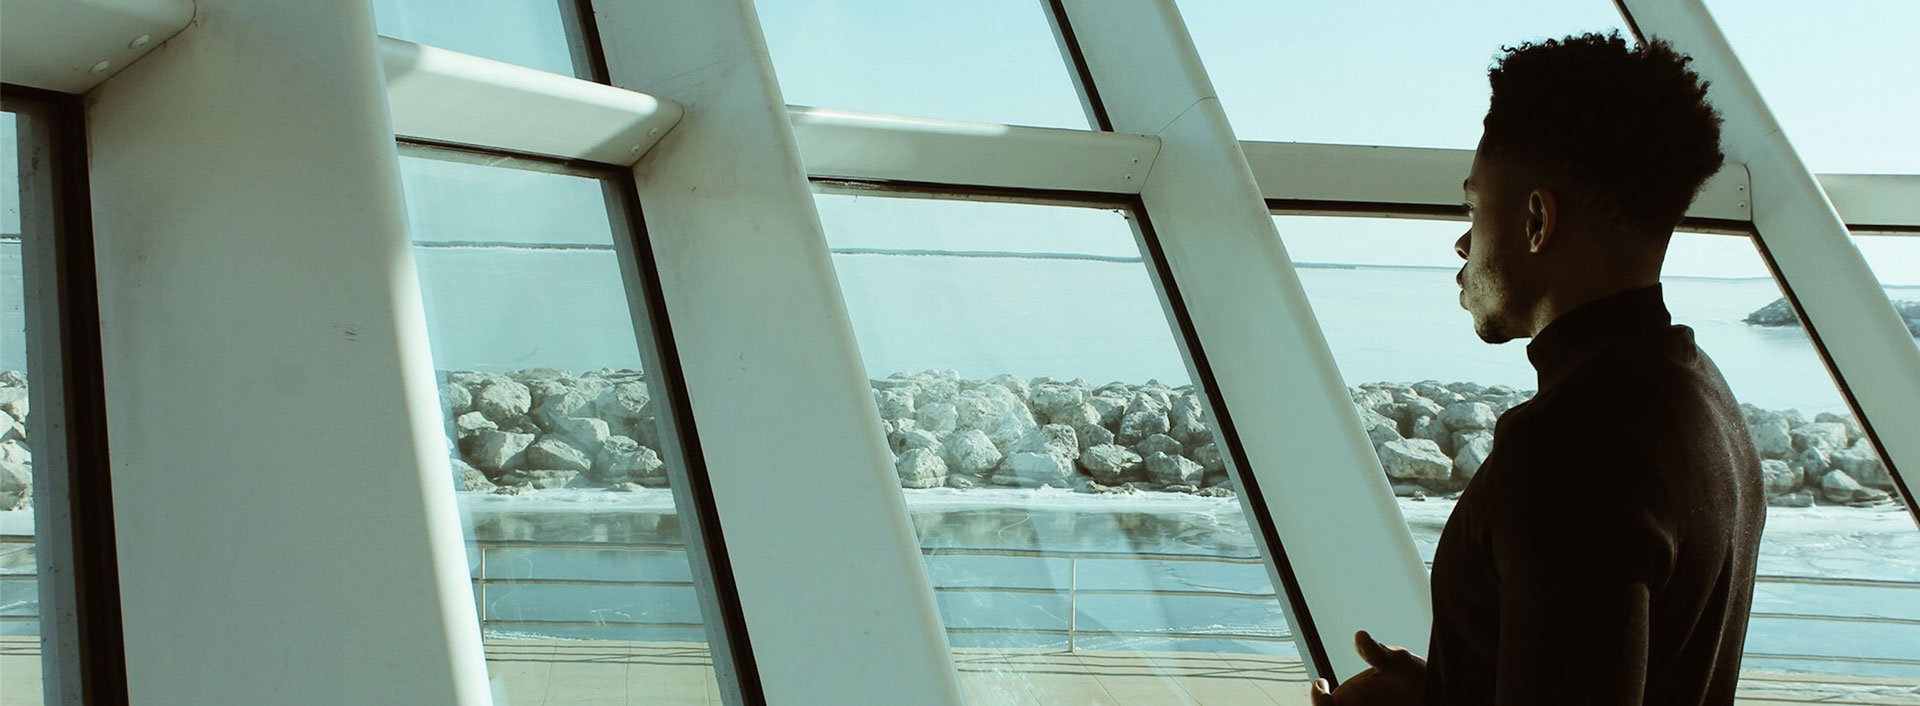 Photo of a man looking out space age looking windows.